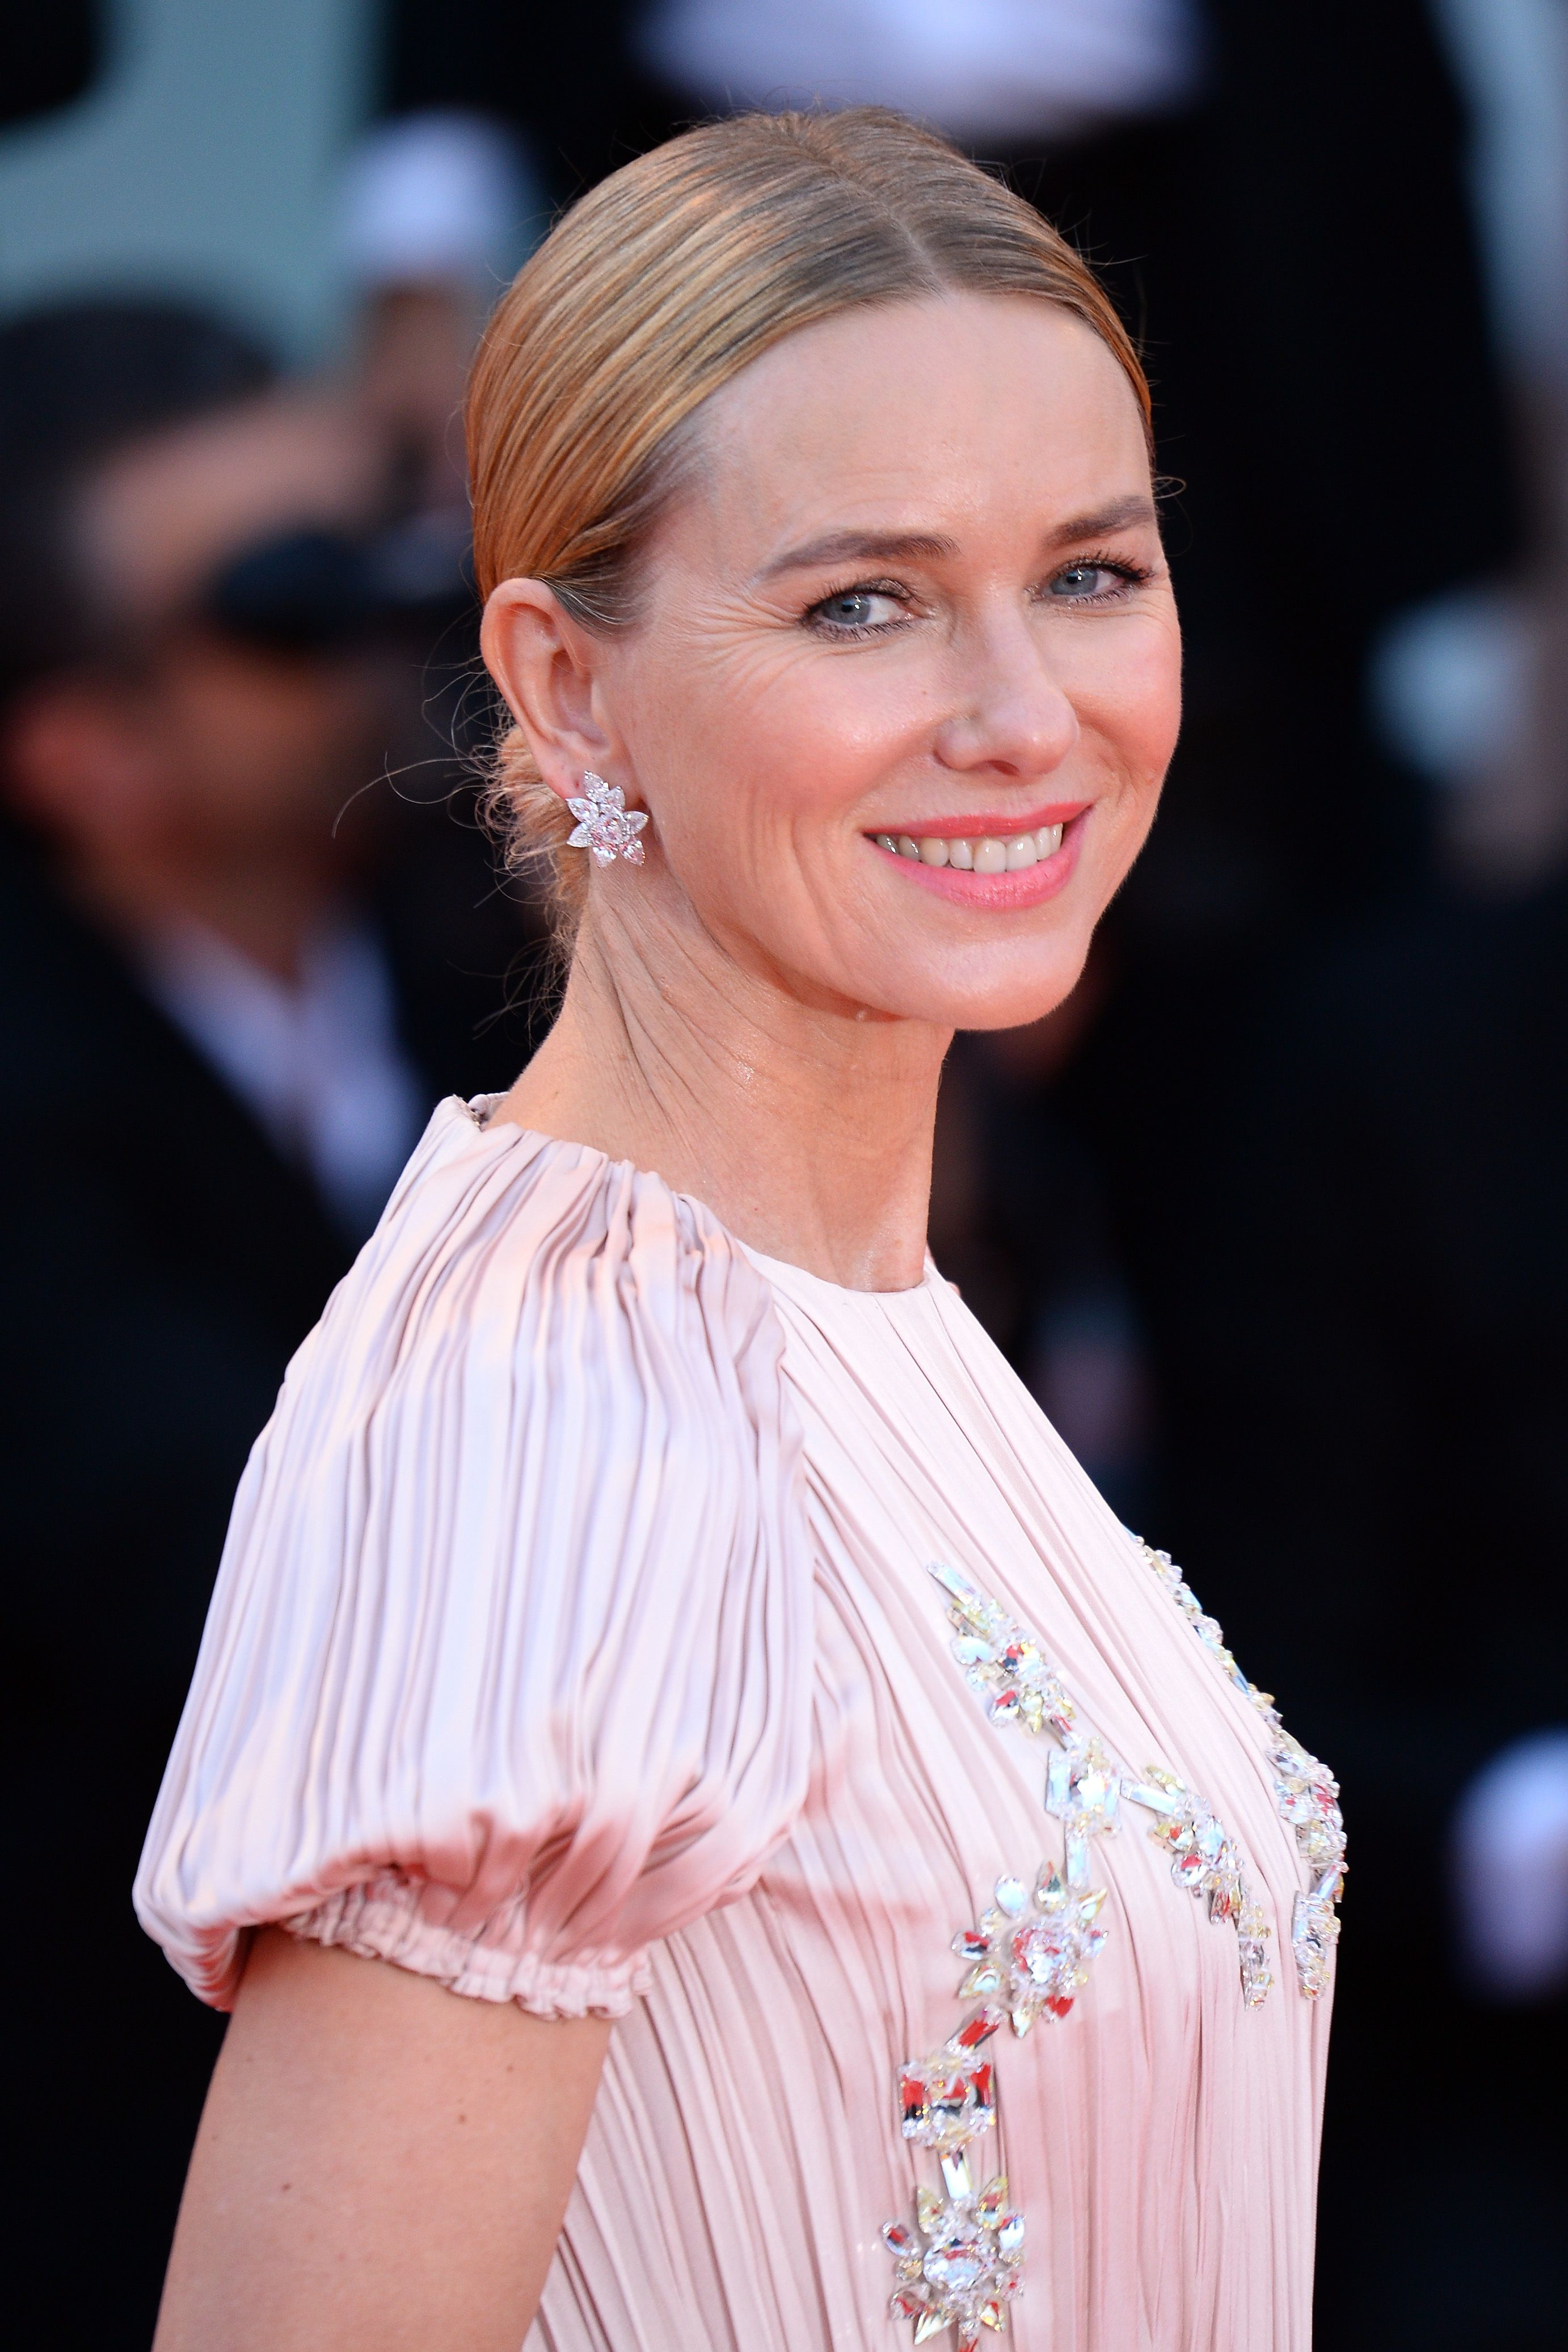 """Naomi Watts Naomi Watts is on the fence about whether botox is for her. """"Personally, I feel for me it's tough to do botox—but it's also tough not to! Sometimes, I think I need the help. Whatever anyone else chooses is fine with me, no judgment,"""" she told New Beauty Magazine ."""